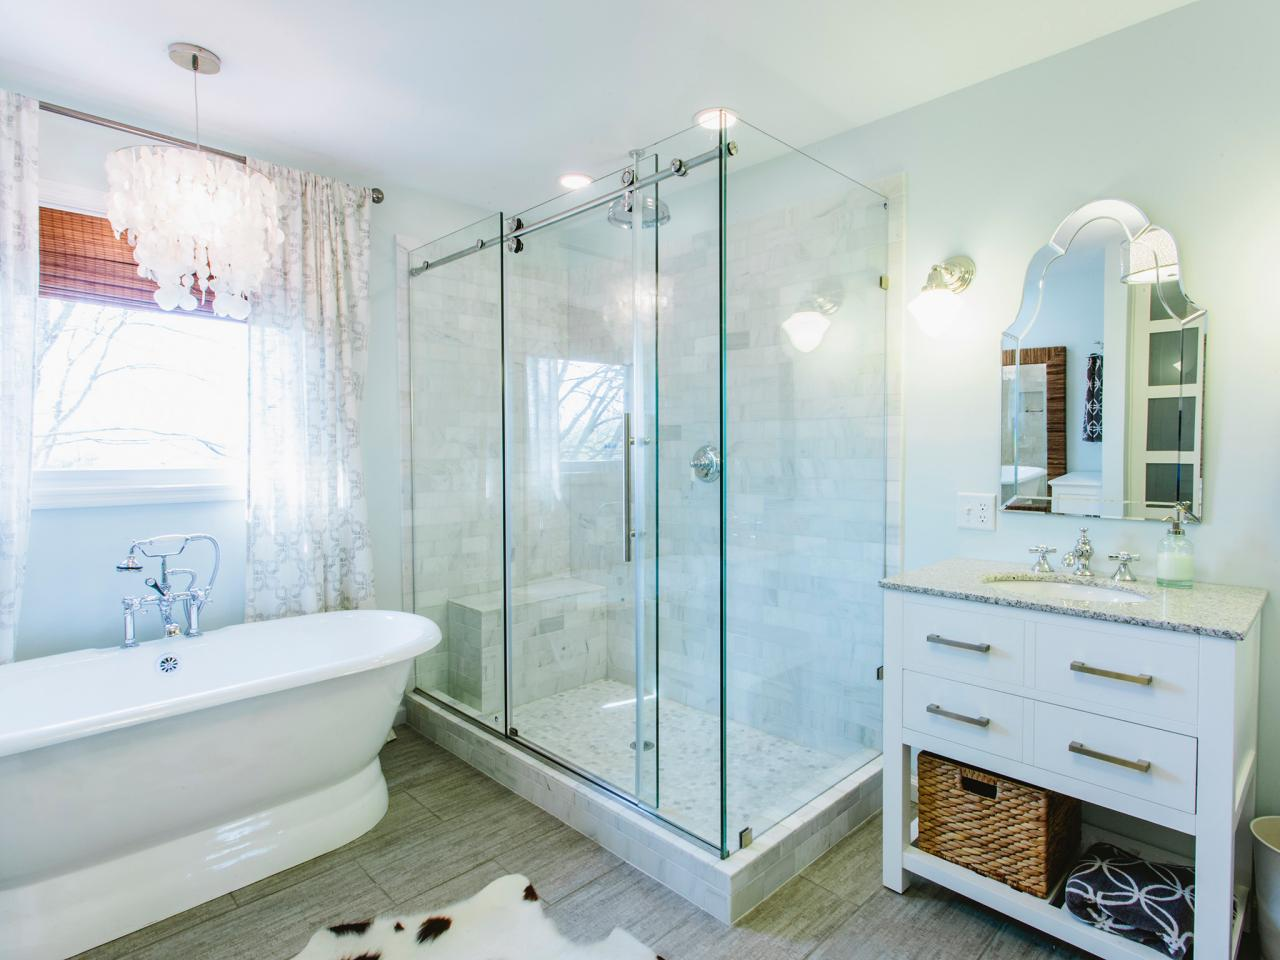 Bathroom Remodel Planner how to plan a bathroom remodel. affordable how to plan a bathroom